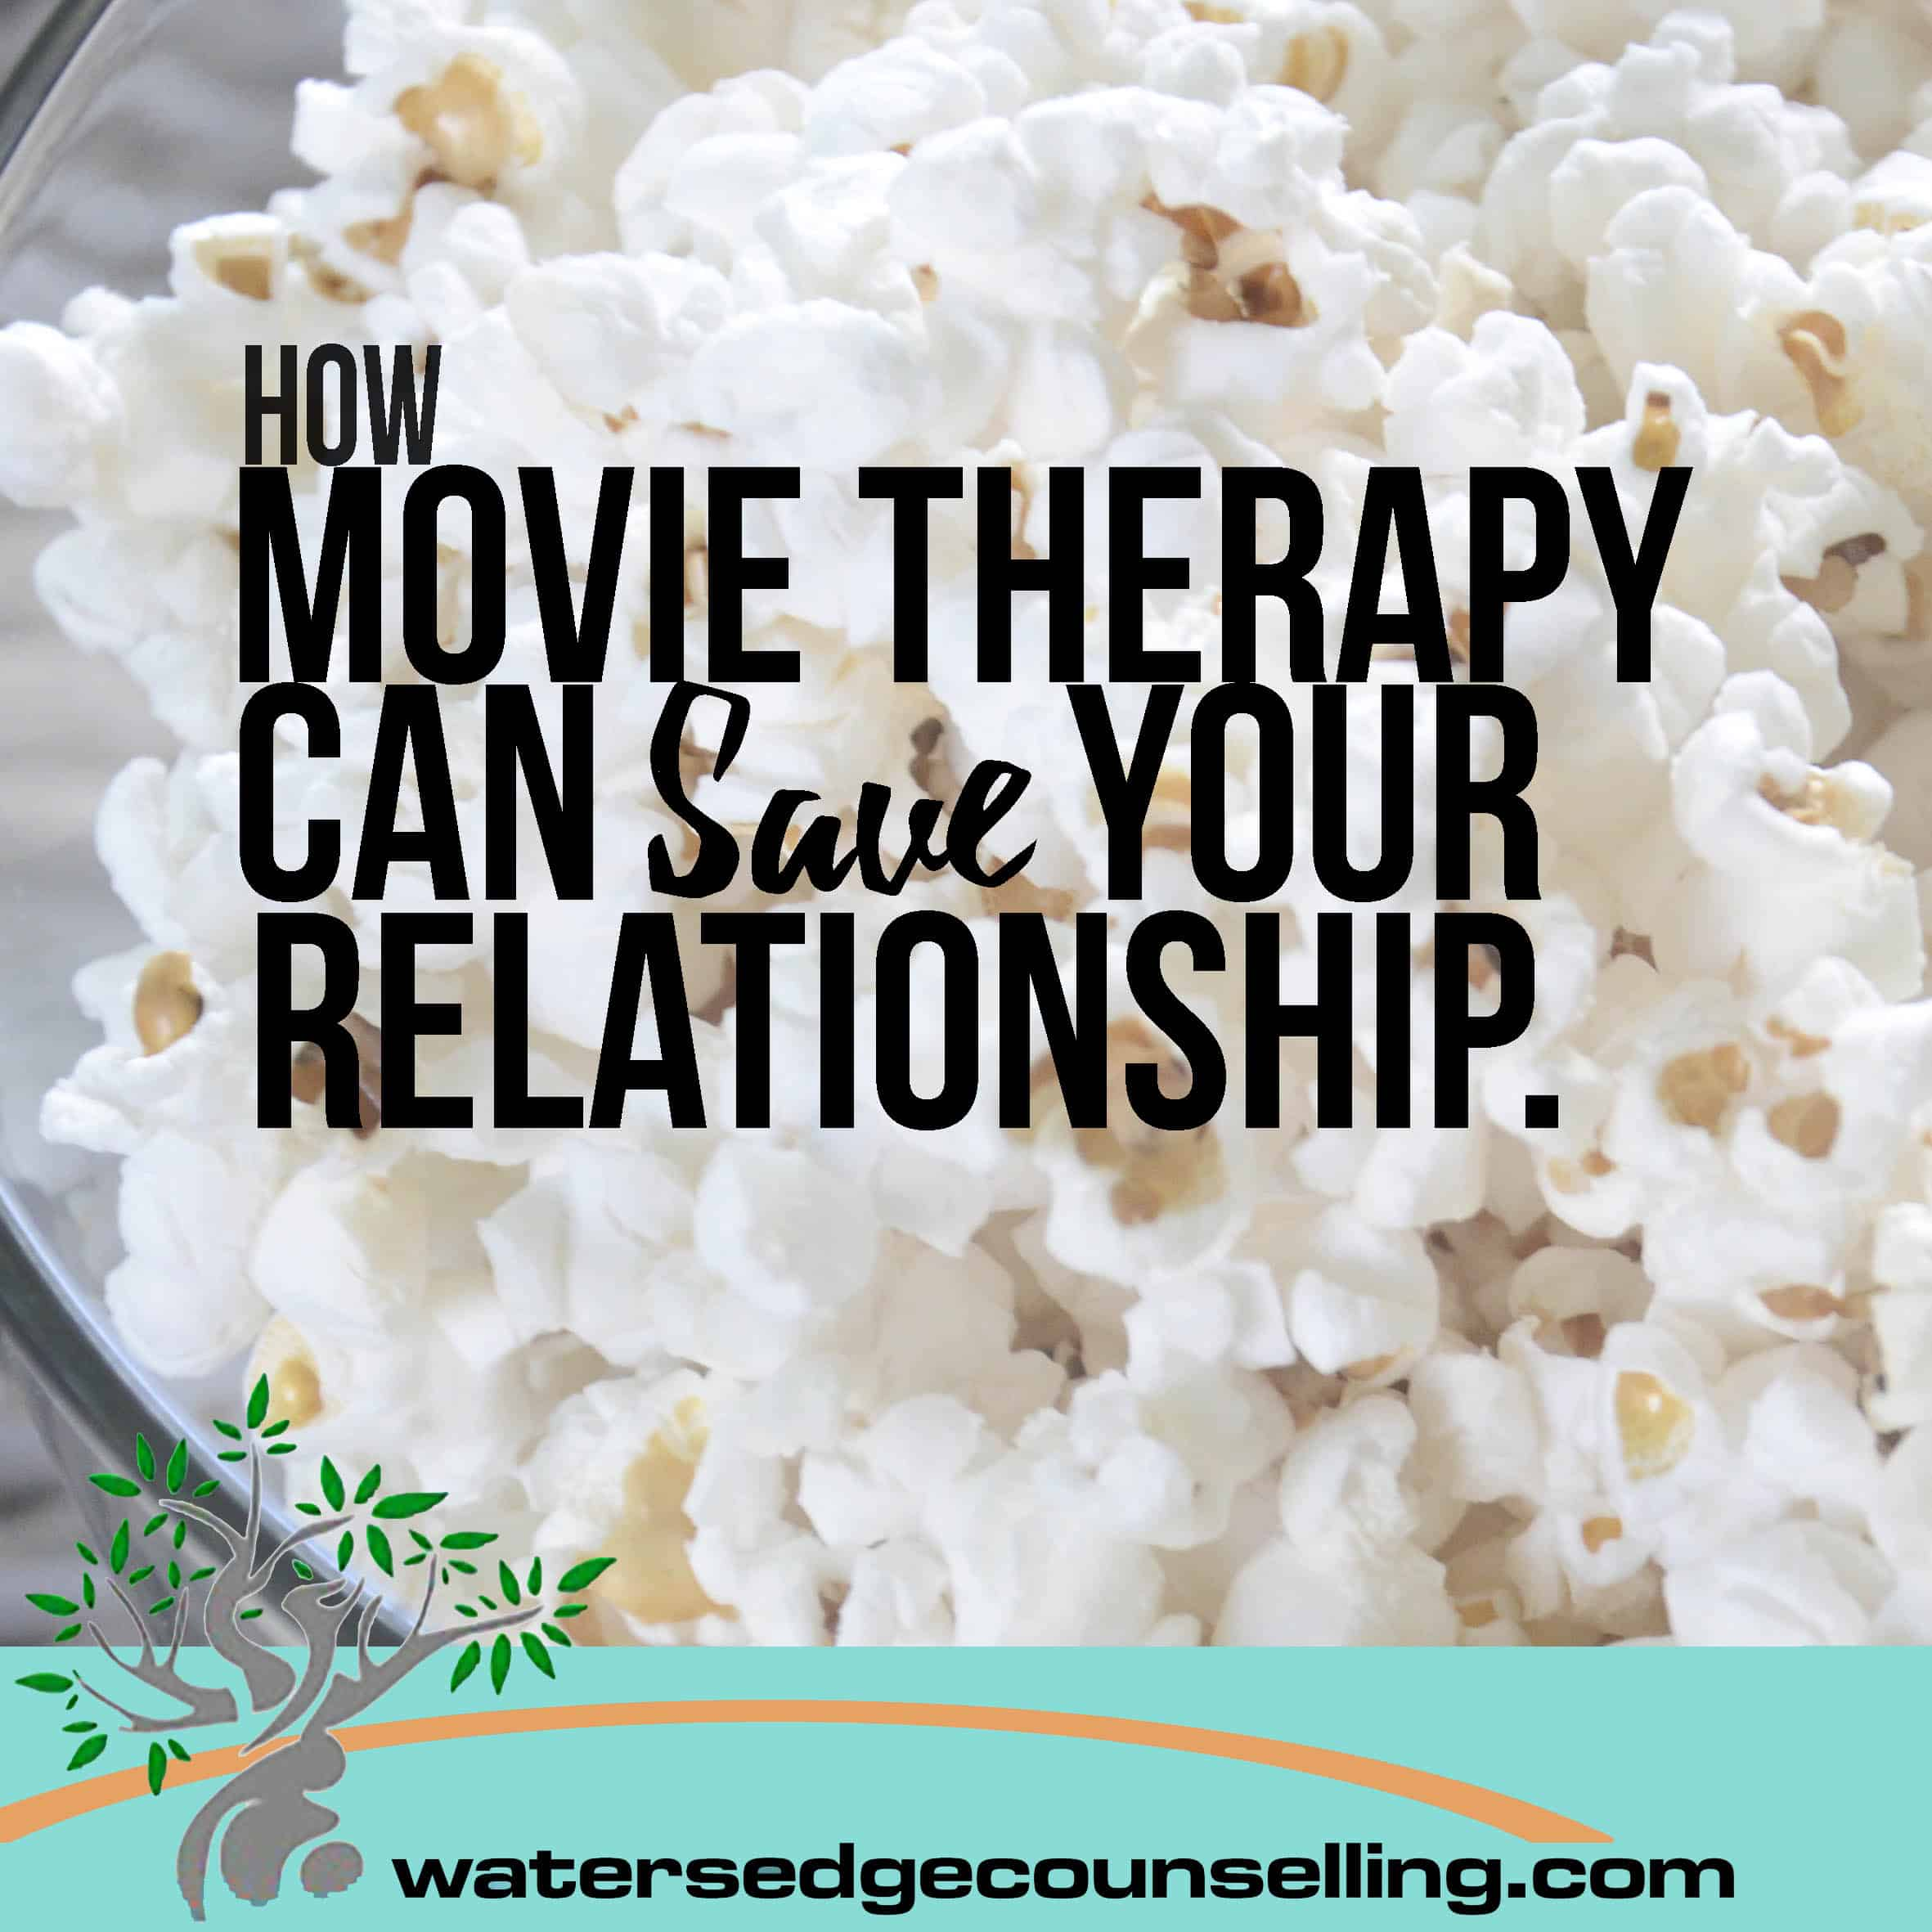 How Movie Therapy Can Save Your Relationship